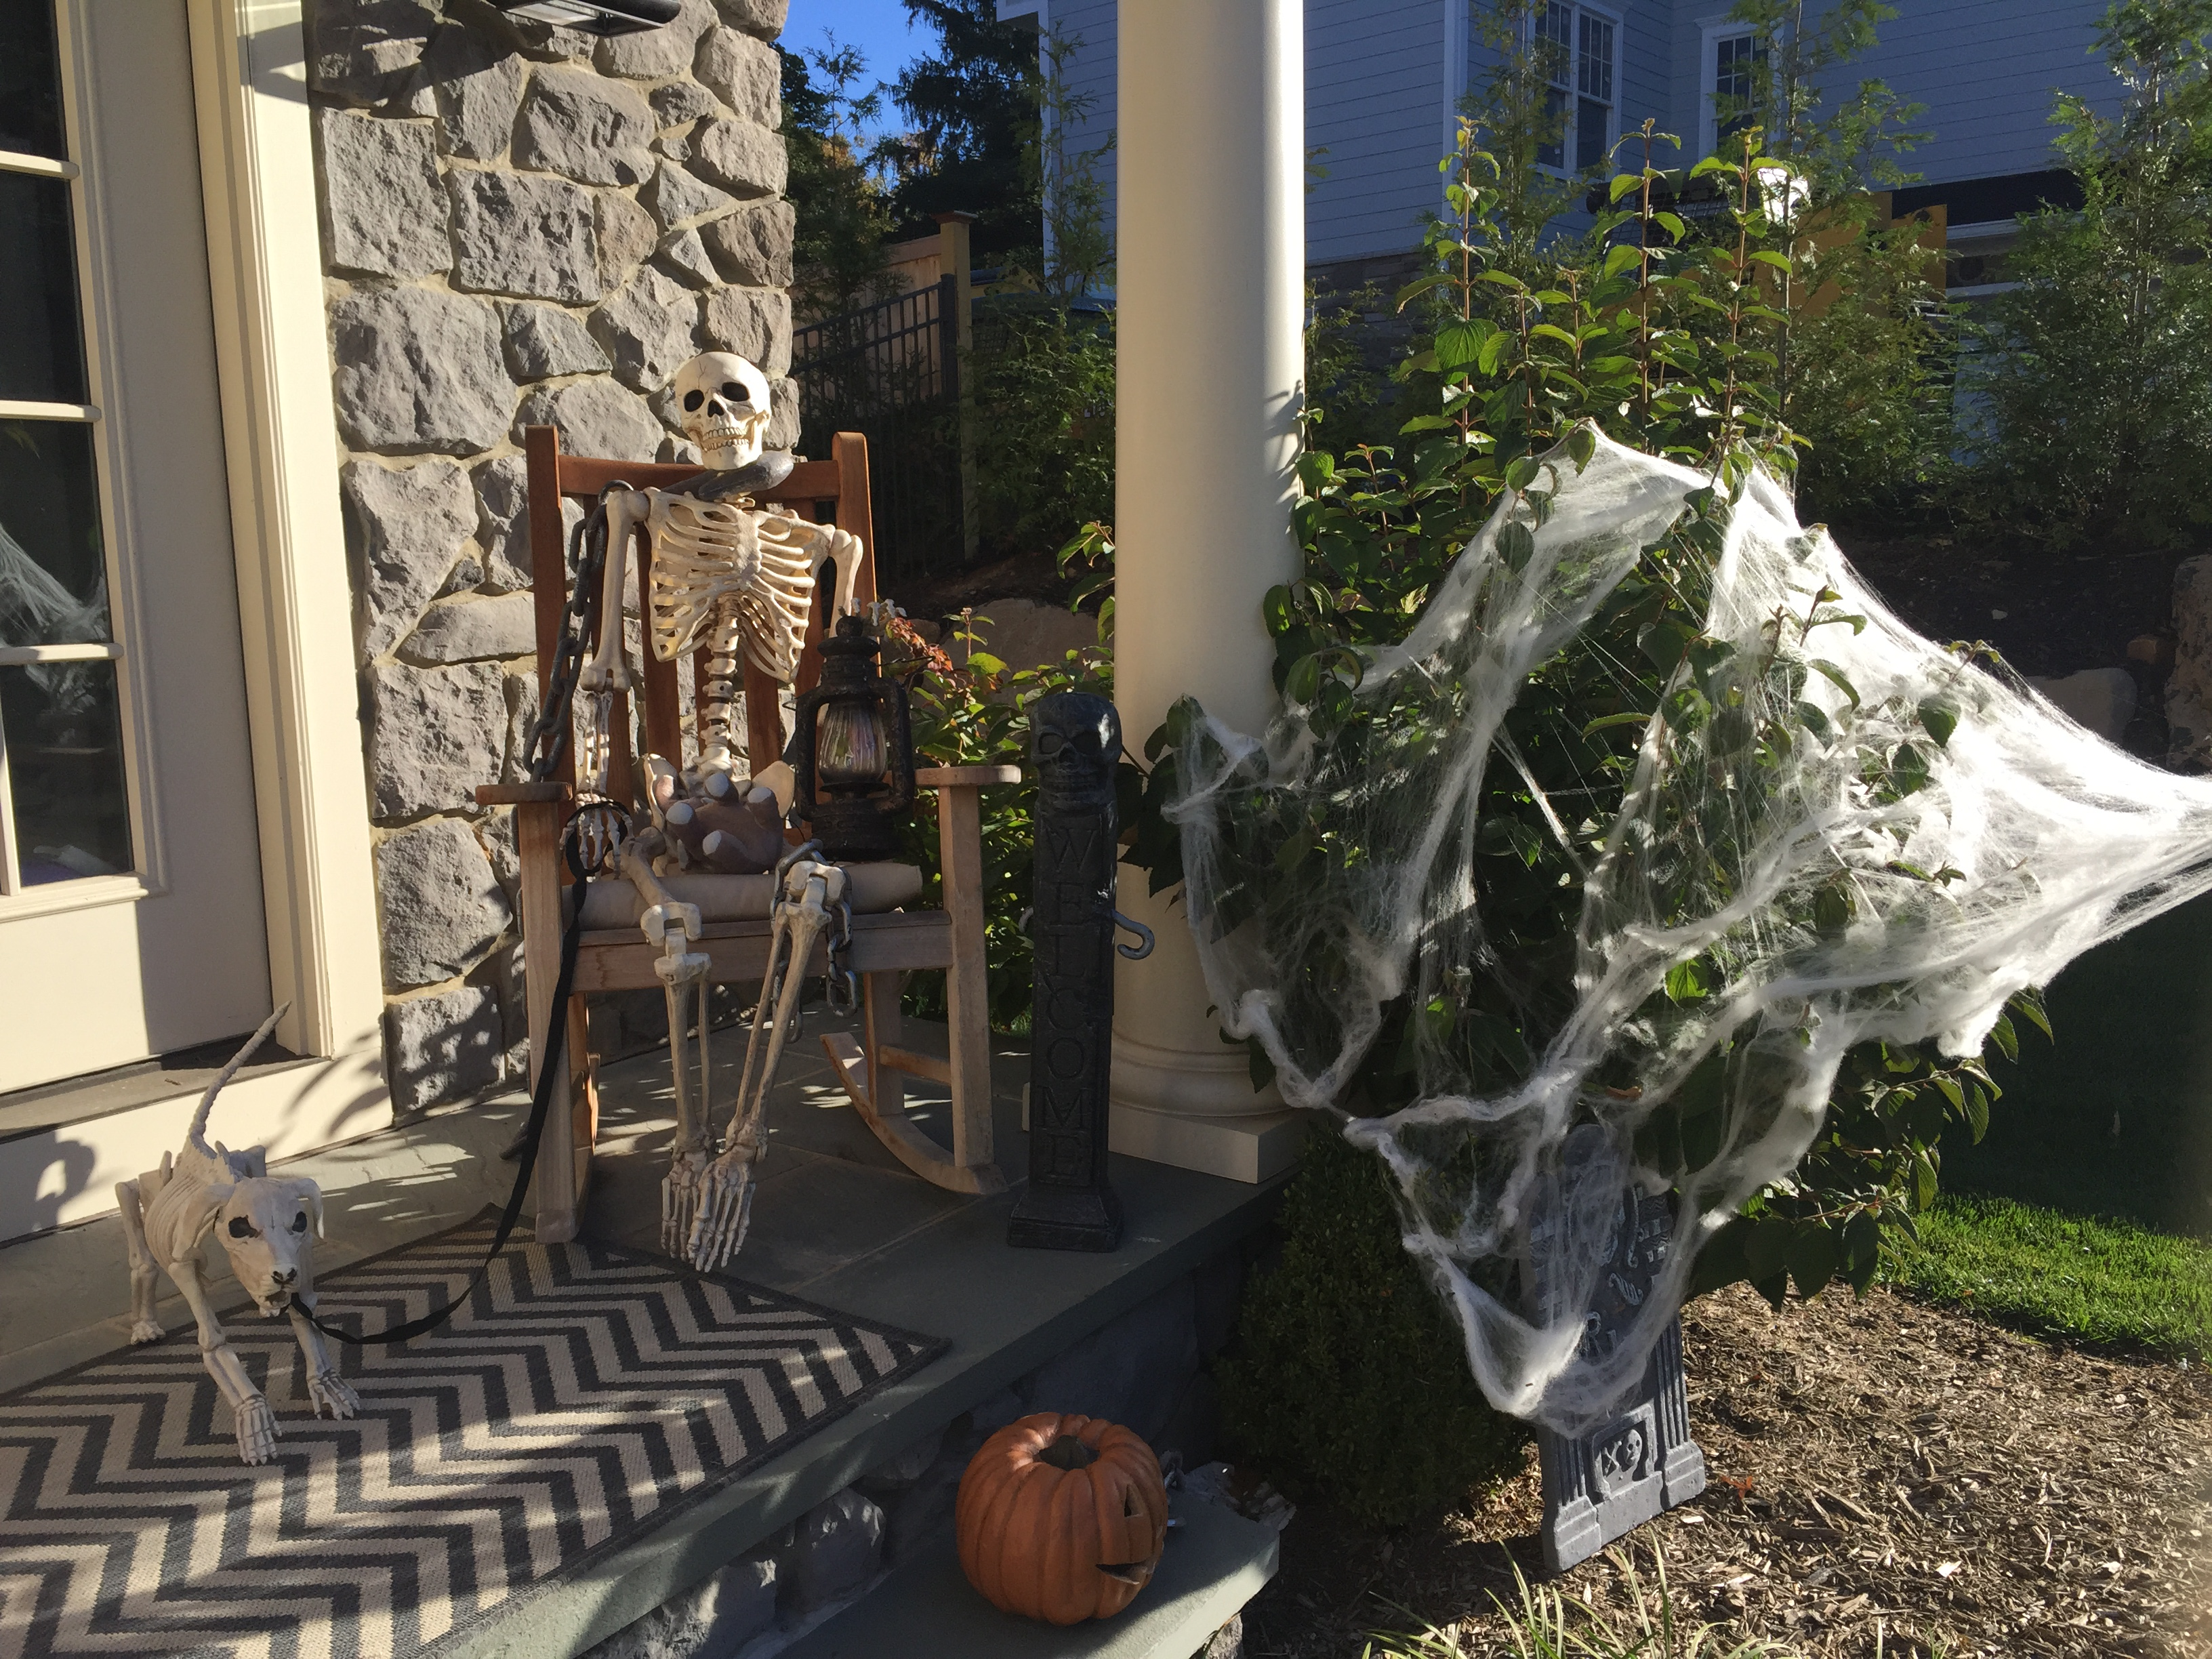 Let's Boycott Halloween House Decorating to Make Halloween More Simple